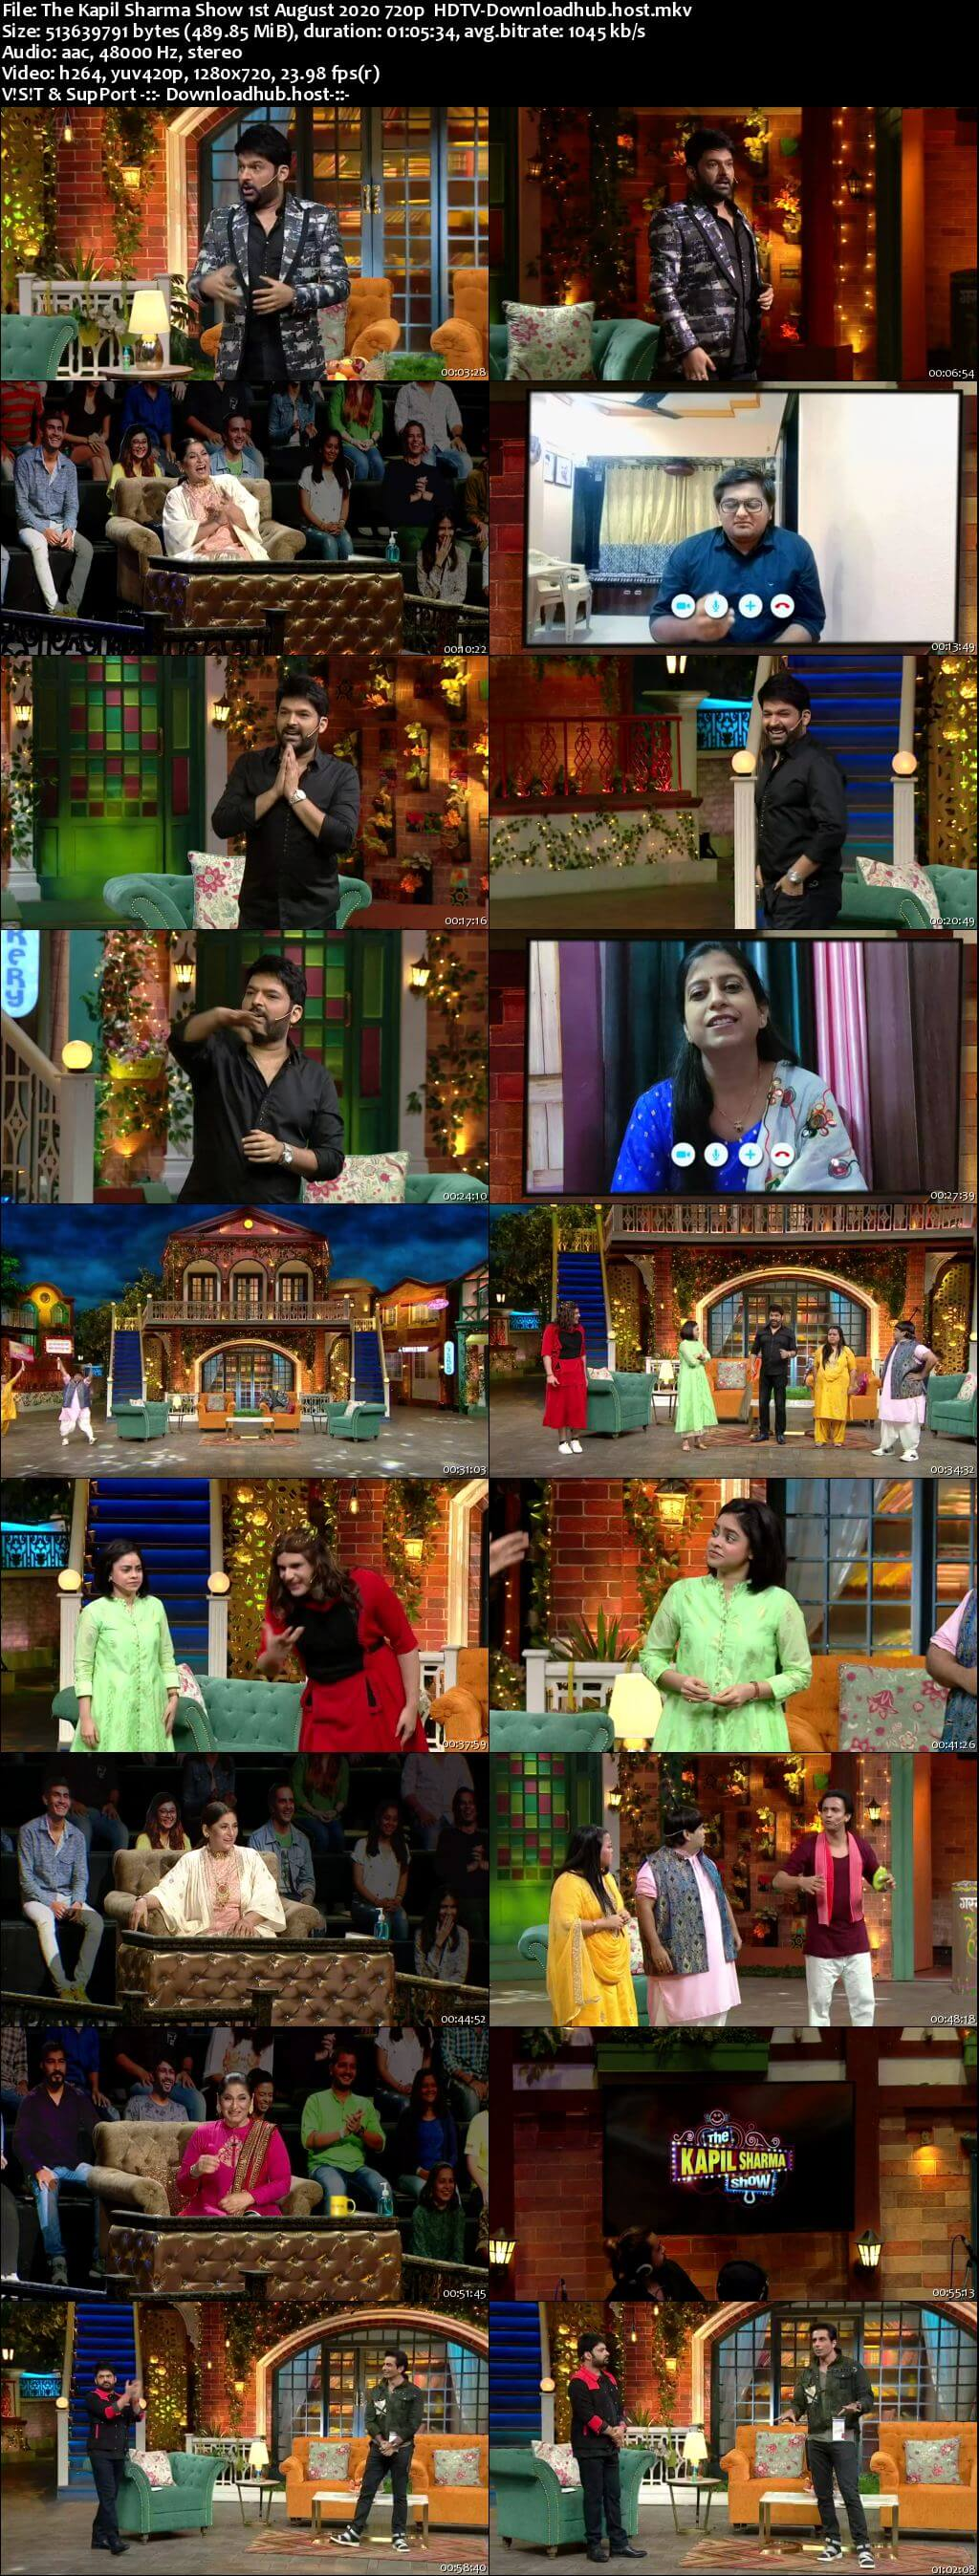 The Kapil Sharma Show 01 August 2020 Episode 128 HDTV 720p 480p